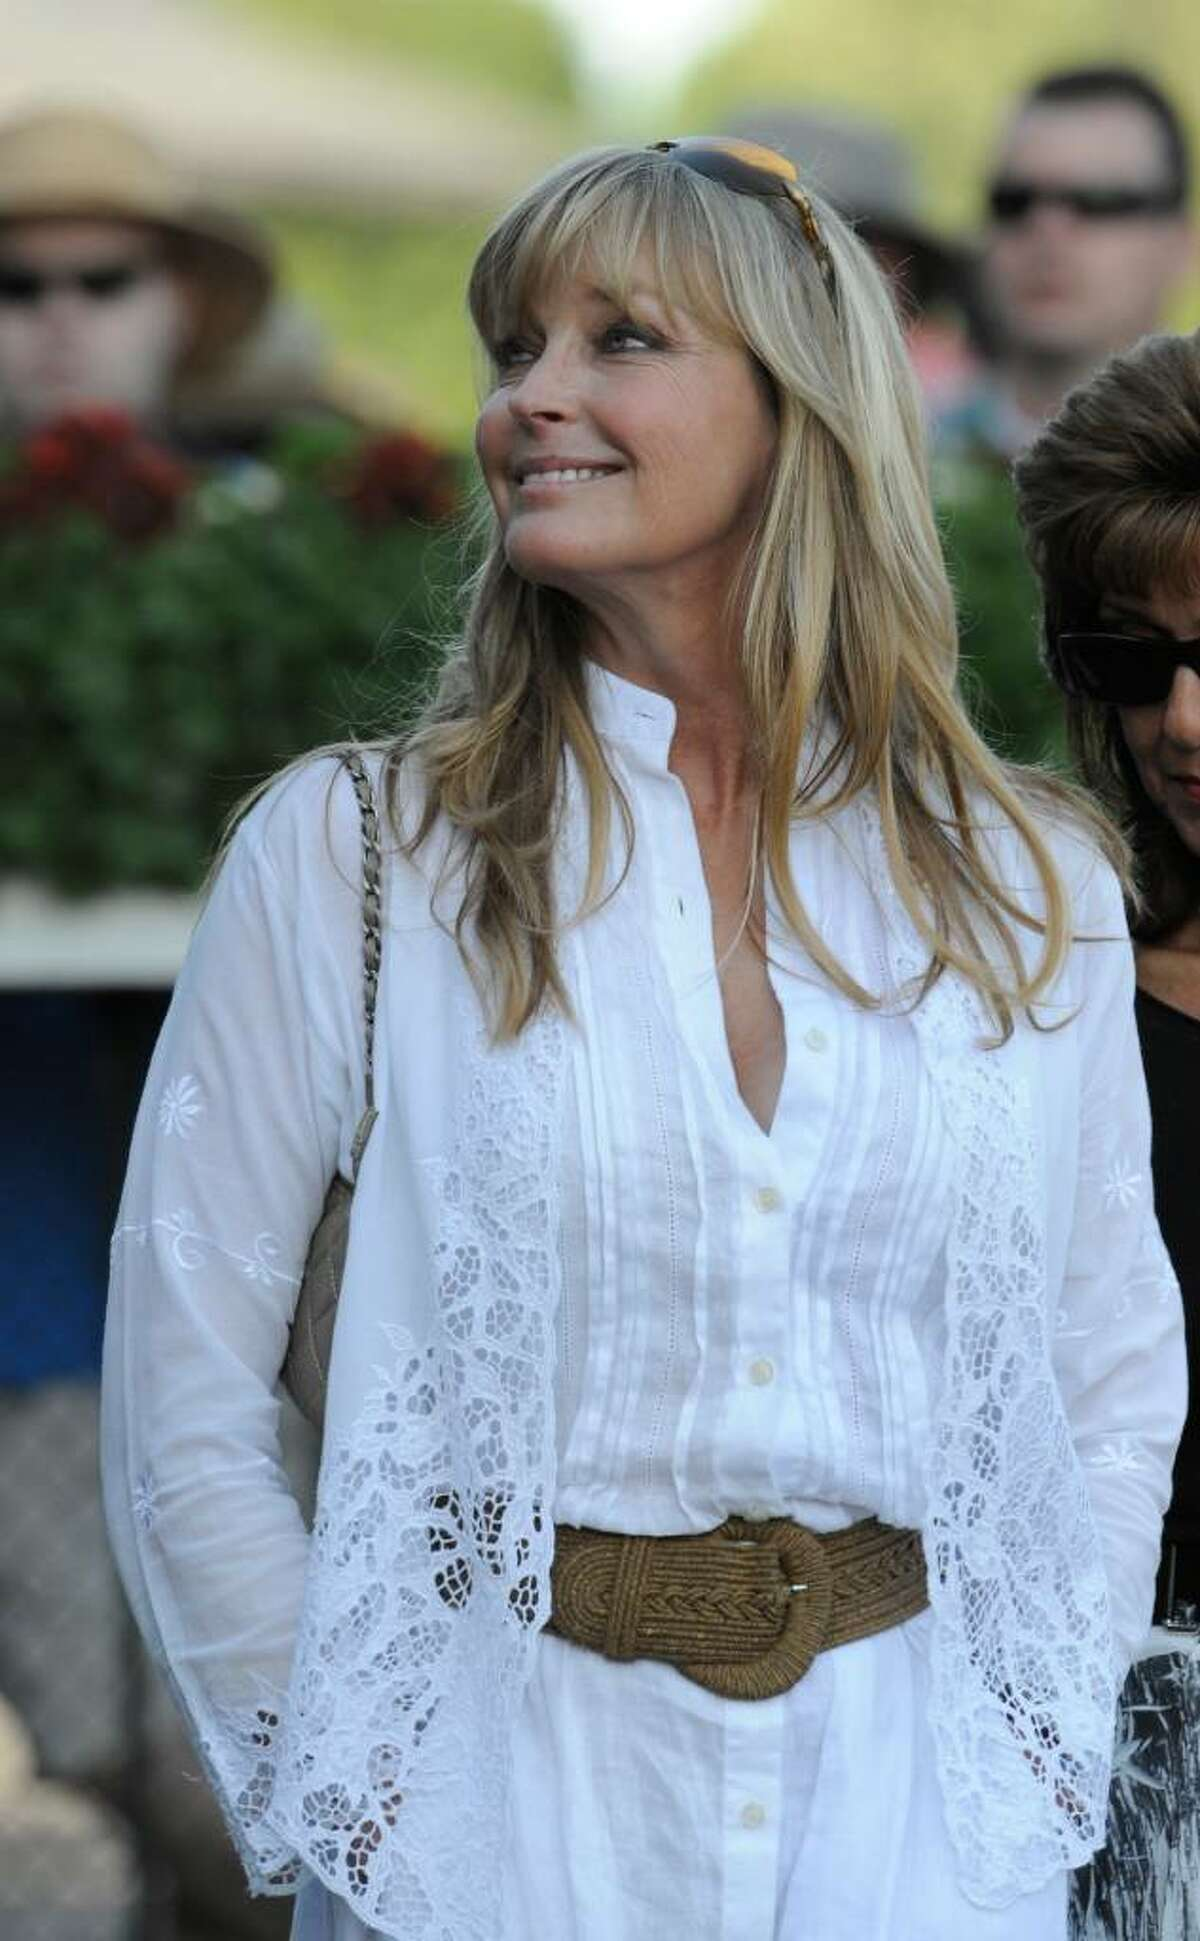 Actress Bo Derek makes a visit to the winner's circle at the Saratoga Race Course. (Skip Dickstein / Times Union)